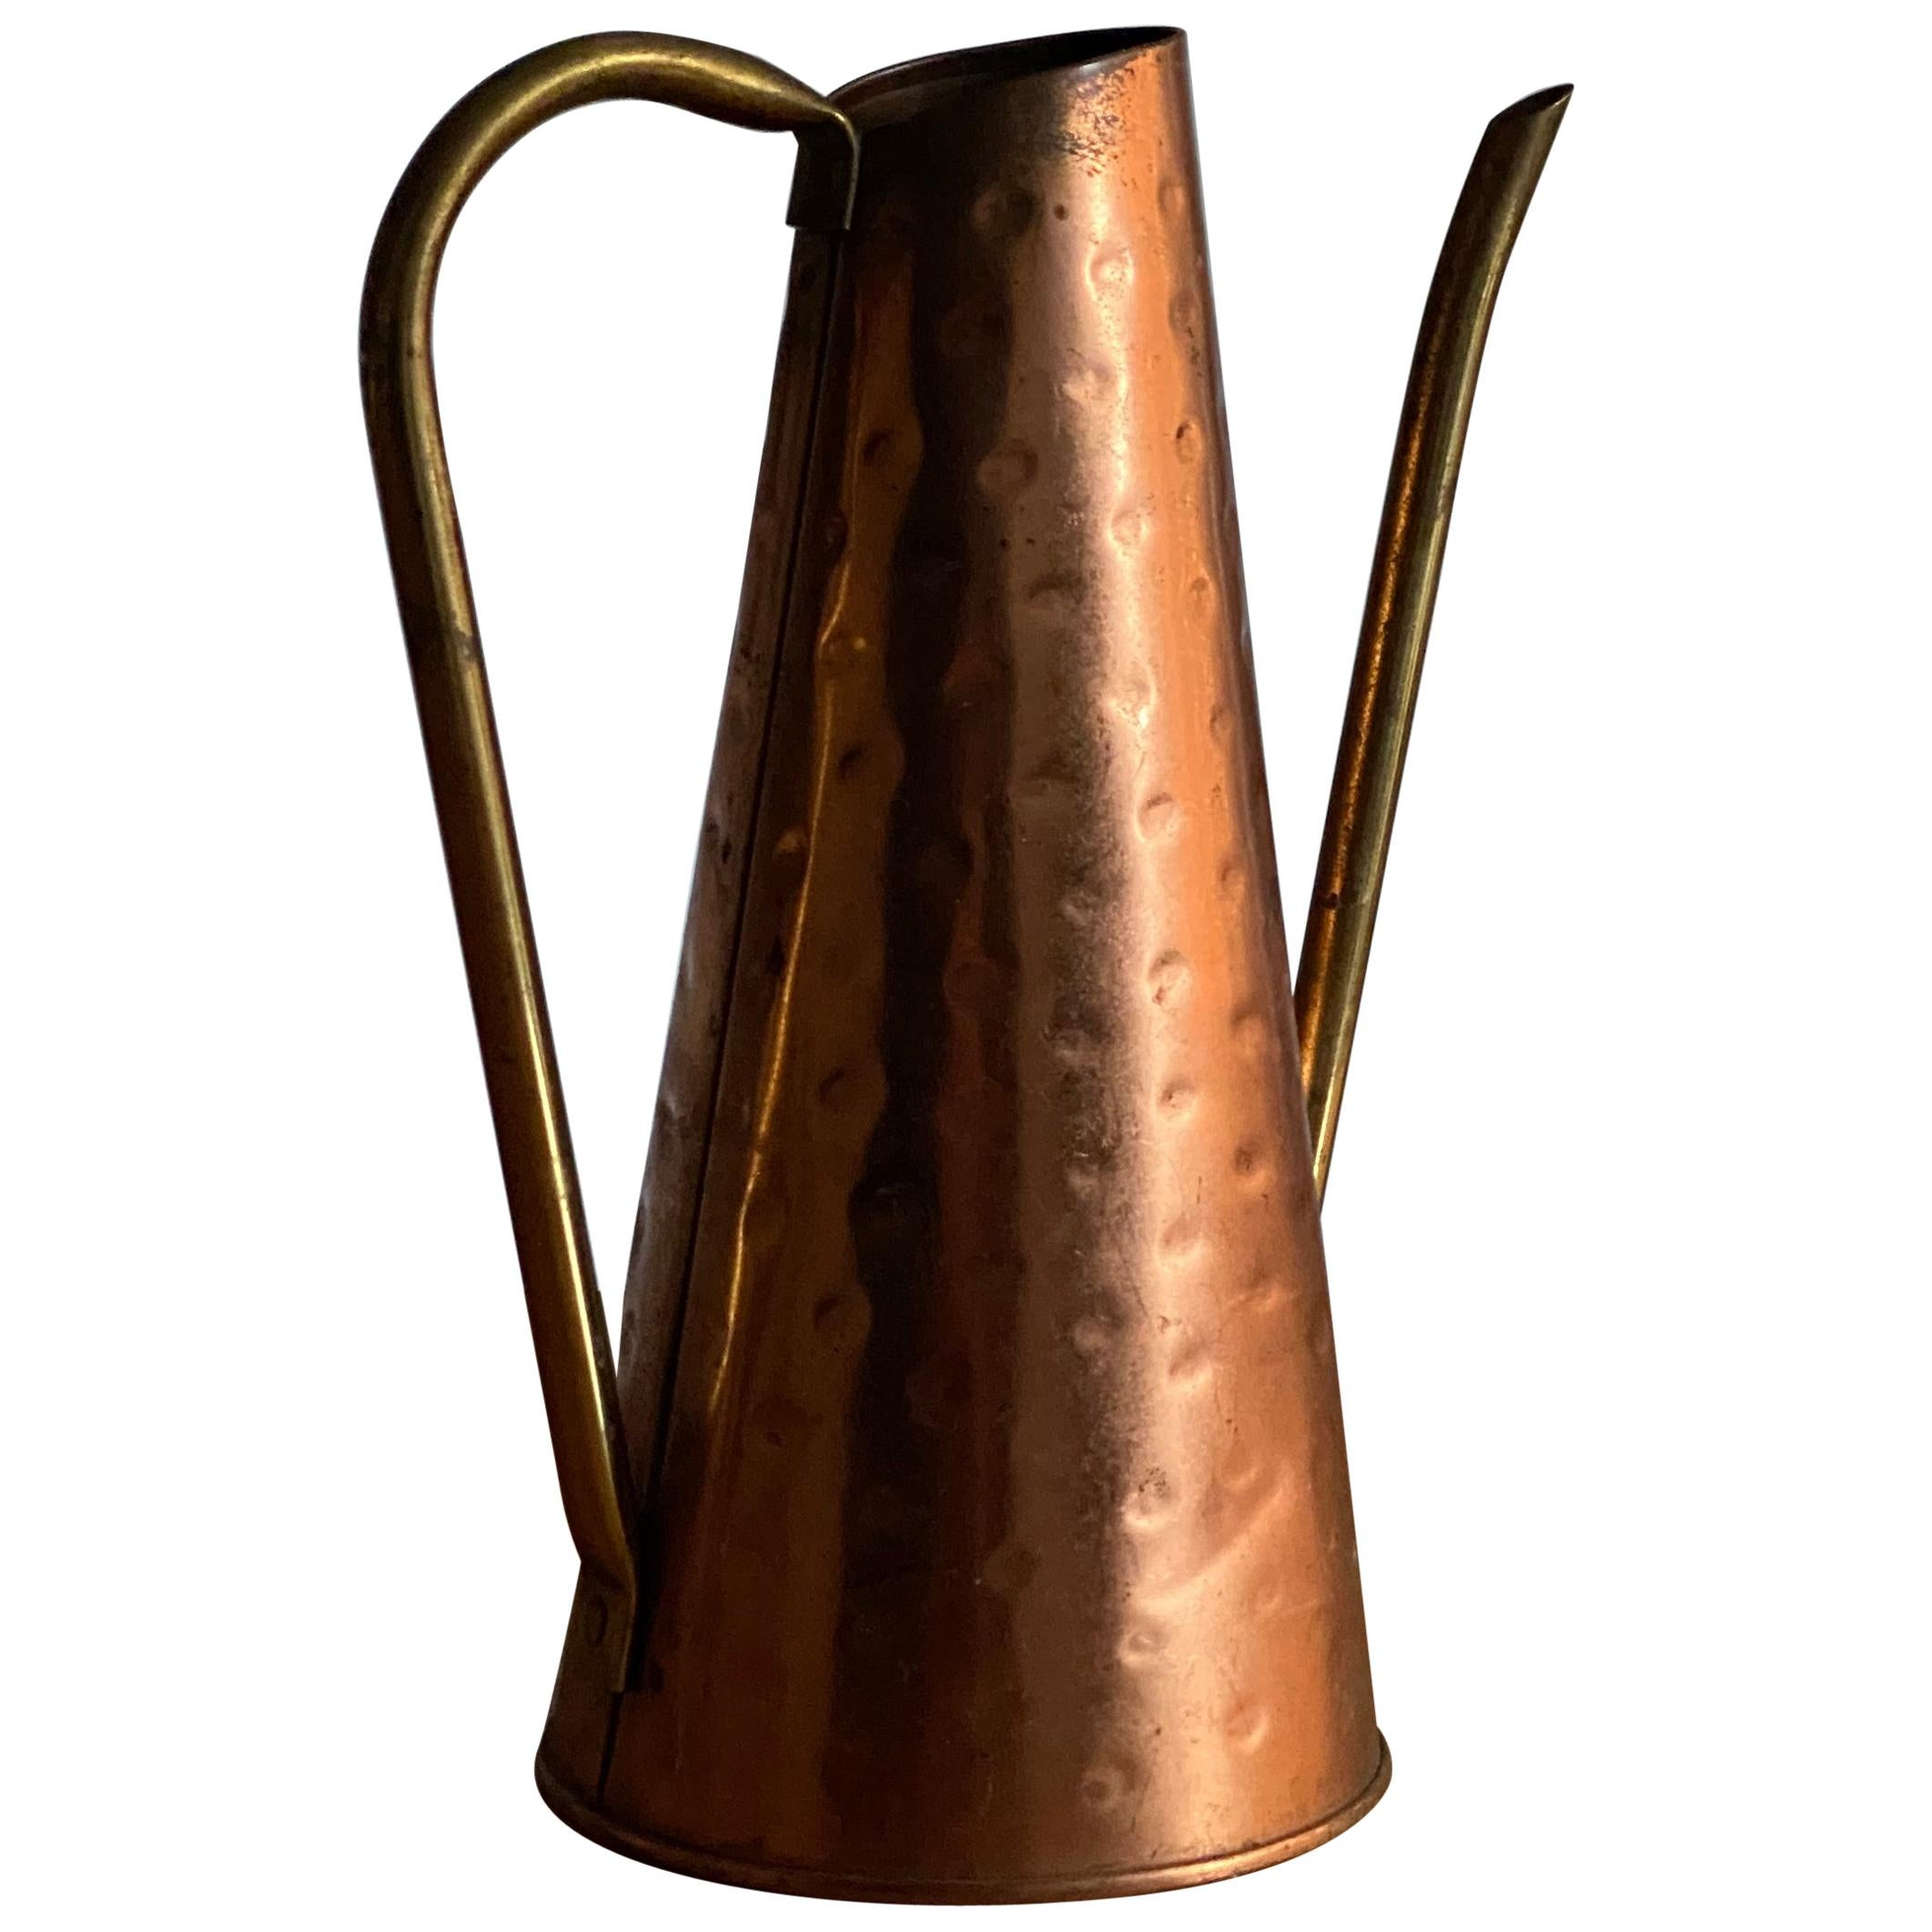 Nielsen, Modernist Studio Watering Can, Copper and Brass, Denmark, circa 1960s